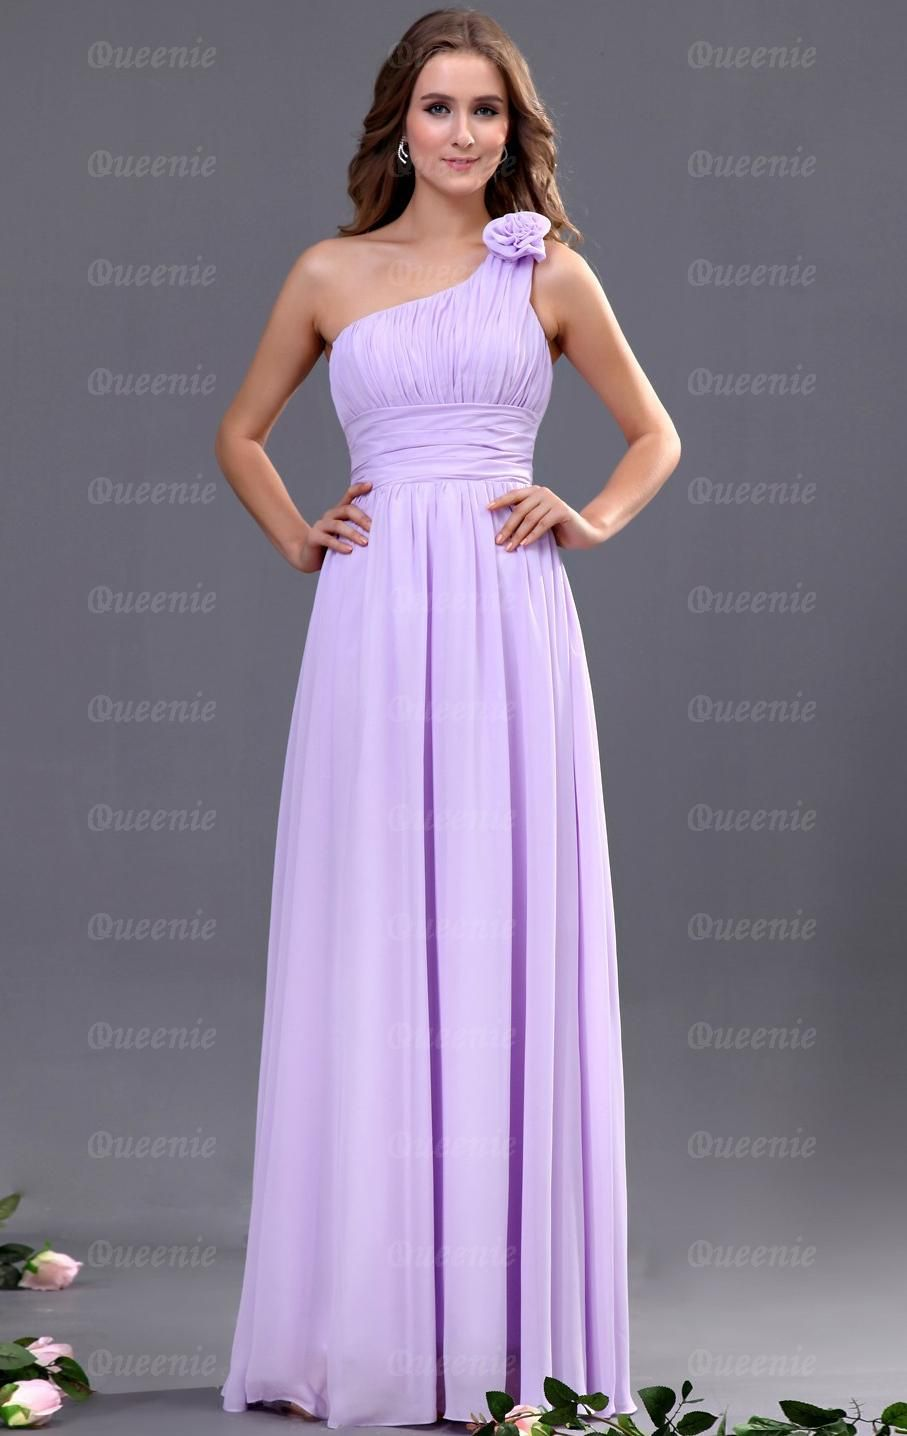 Wedding Lilac Dress glamorous one shoulder bridesmaid dresses designs best lilac dress